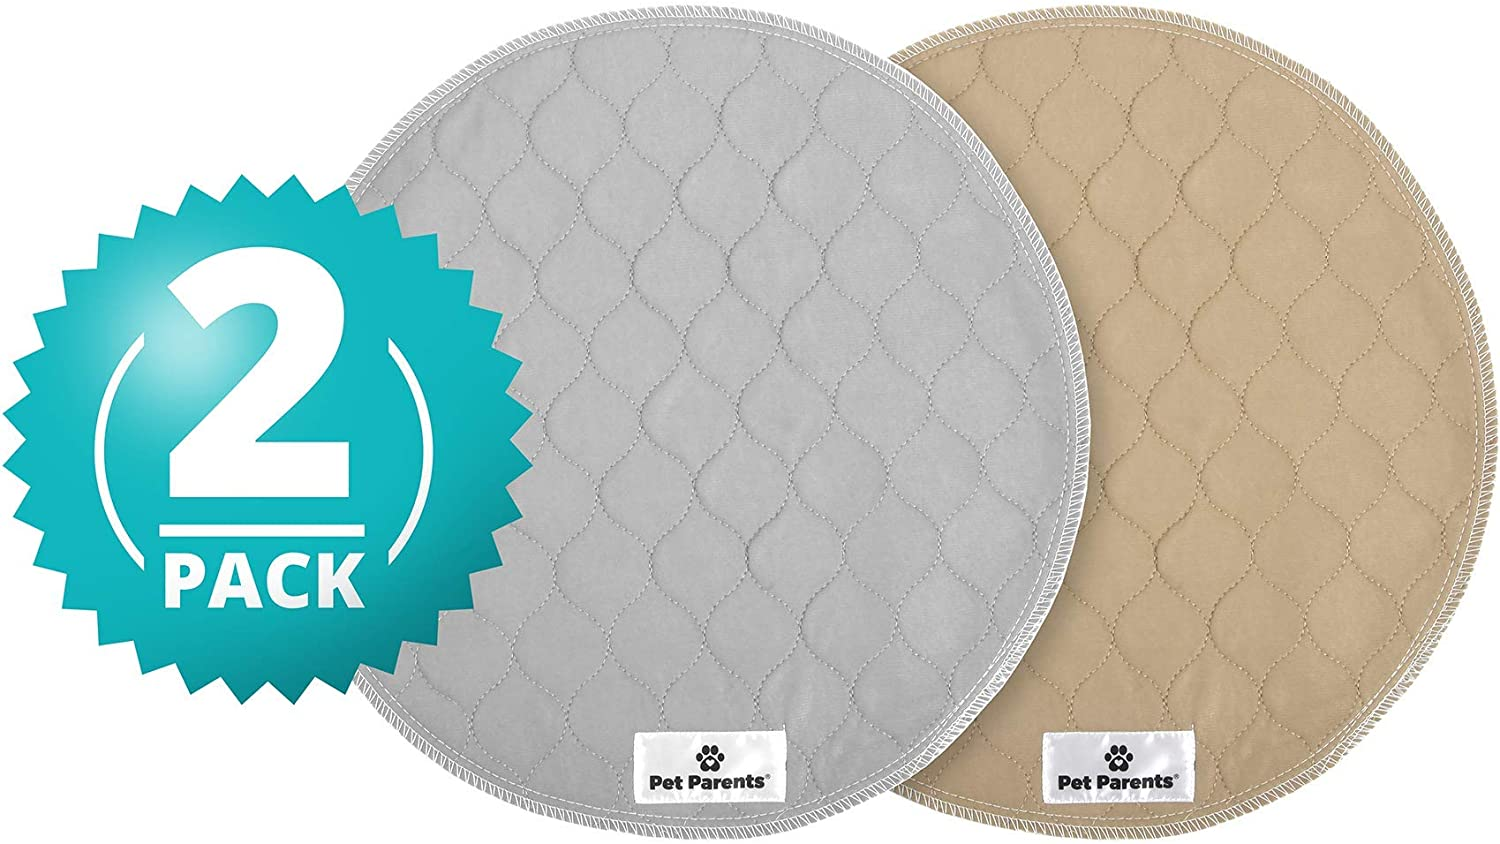 """Pet Parents Washable Round Whelping Pads (2pack) of 17"""" Circle Premium Pee Pads for Dogs, Waterproof Dog Pee Pads, Circle Reusable Dog Training Pads, Pet Pee Pads! Modern Puppy Pads! -1 Tan & 1 Grey : Pet Supplies"""